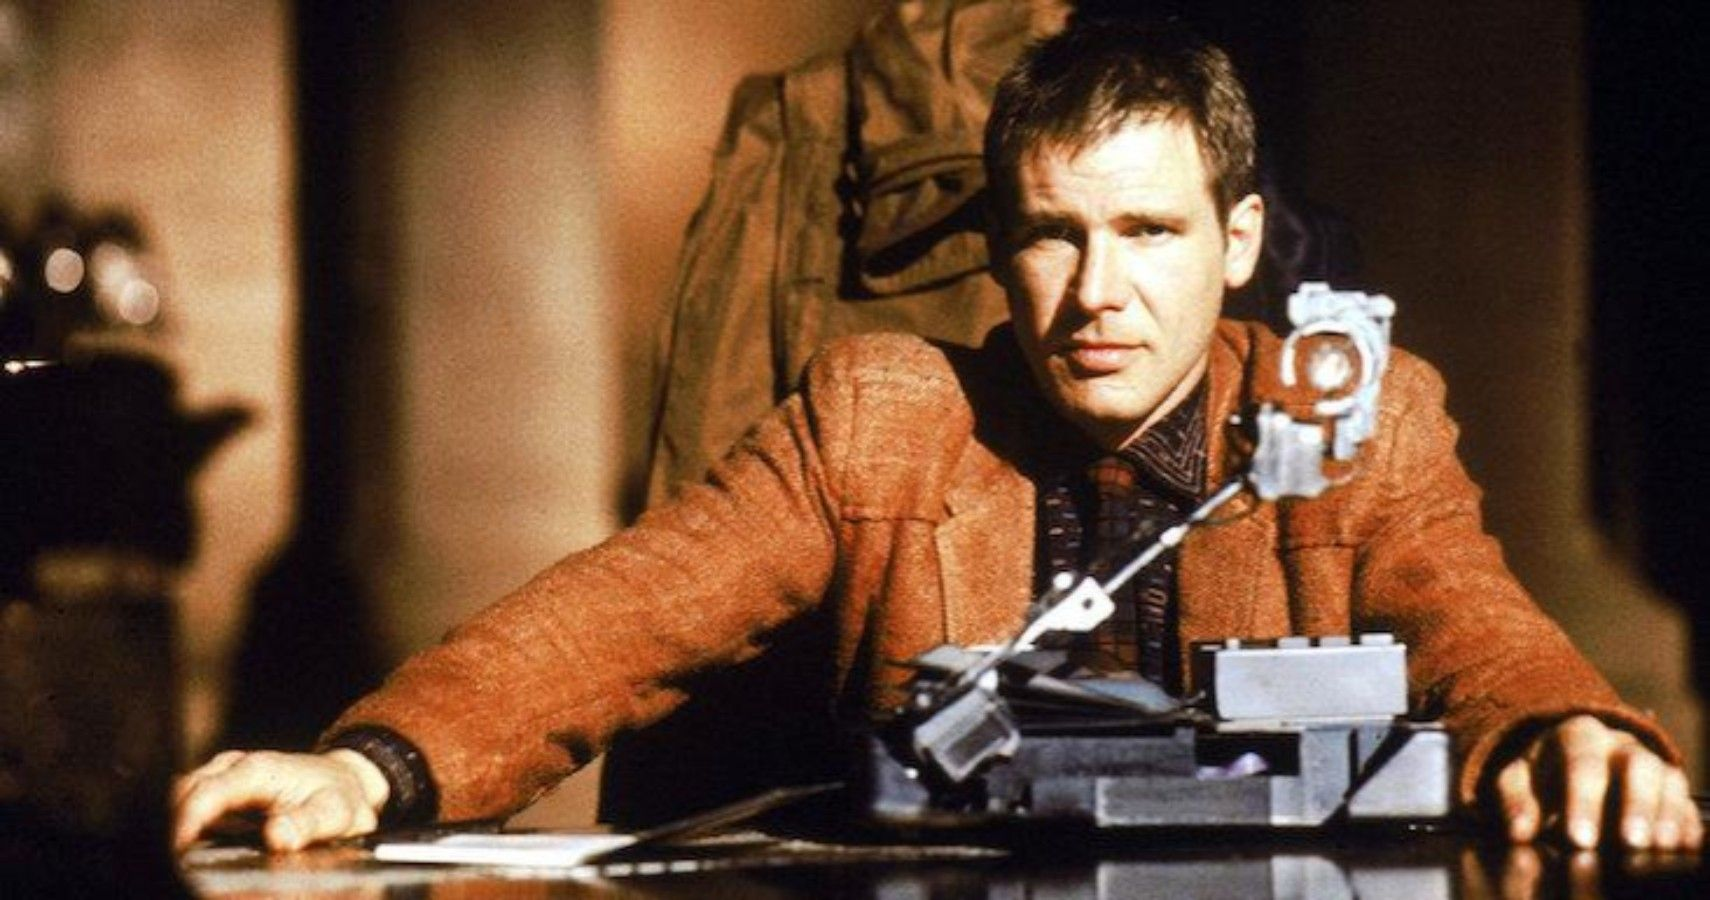 Blade Runner: 5 Things That Are Scientifically Accurate (And 5 That Make No Sense)